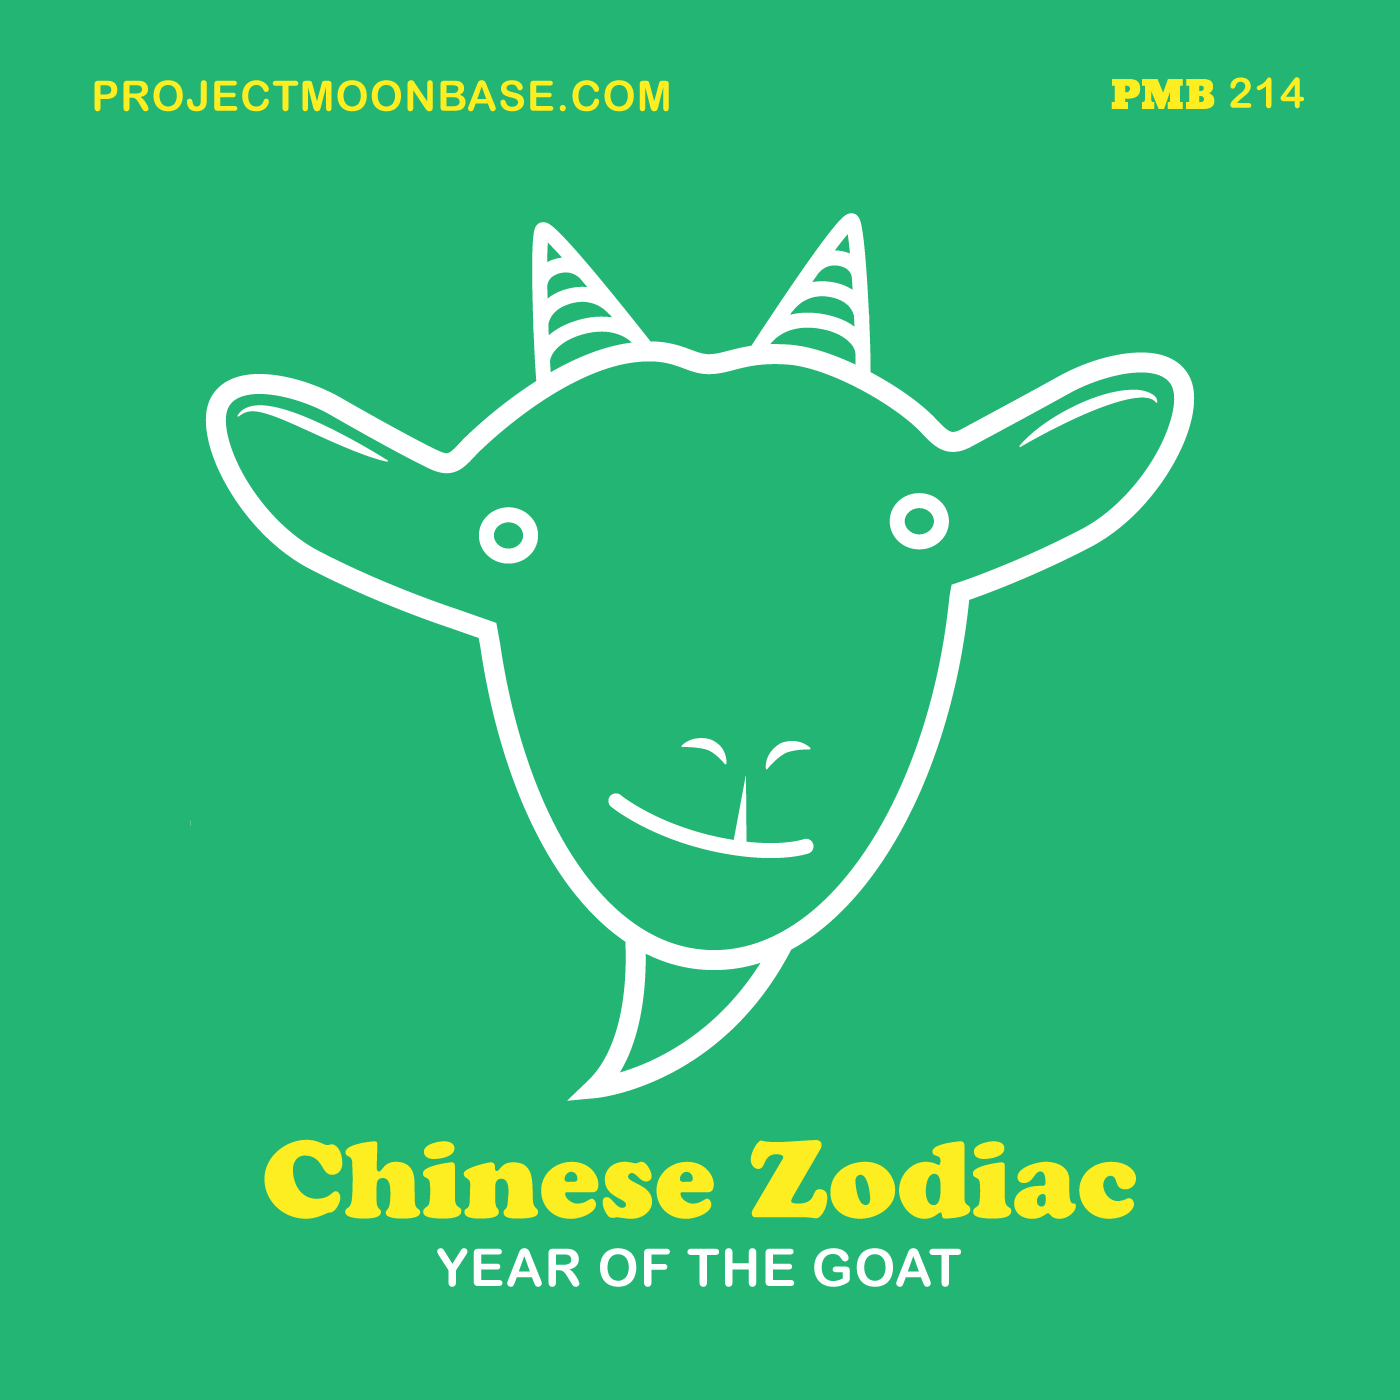 PMB214: Chinese Zodicac - Year of the Goat